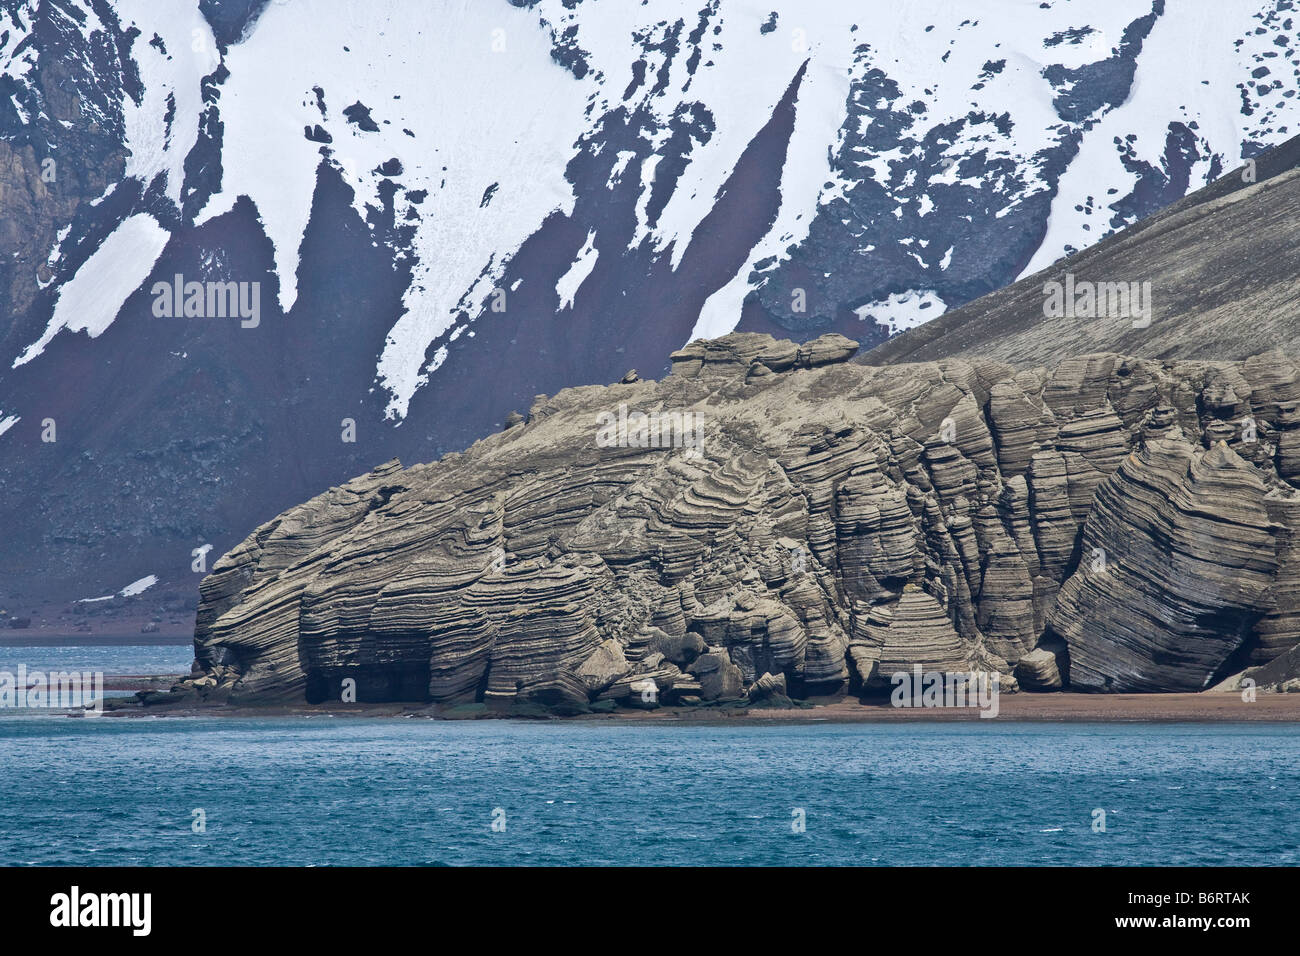 Solidified lava volcanic rocks and ash mix with glacial ice on shores of Deception Island Antarctica - Stock Image